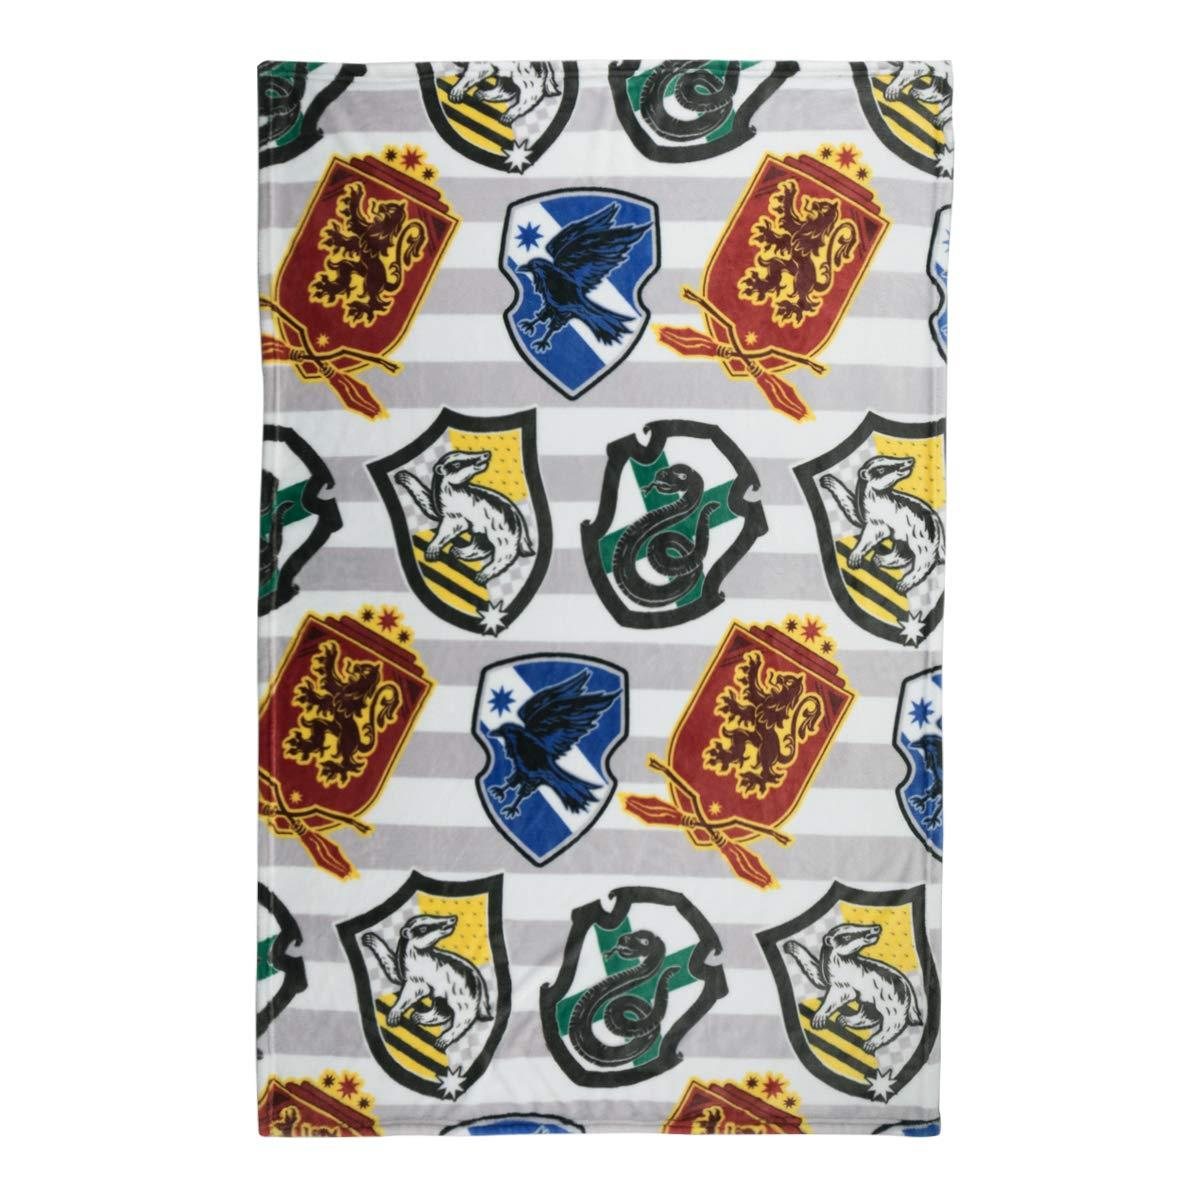 Official-Harry-Potter-Licensed-Fleece-Blanket-Bed-Throw-Hogwarts-Muggles thumbnail 6